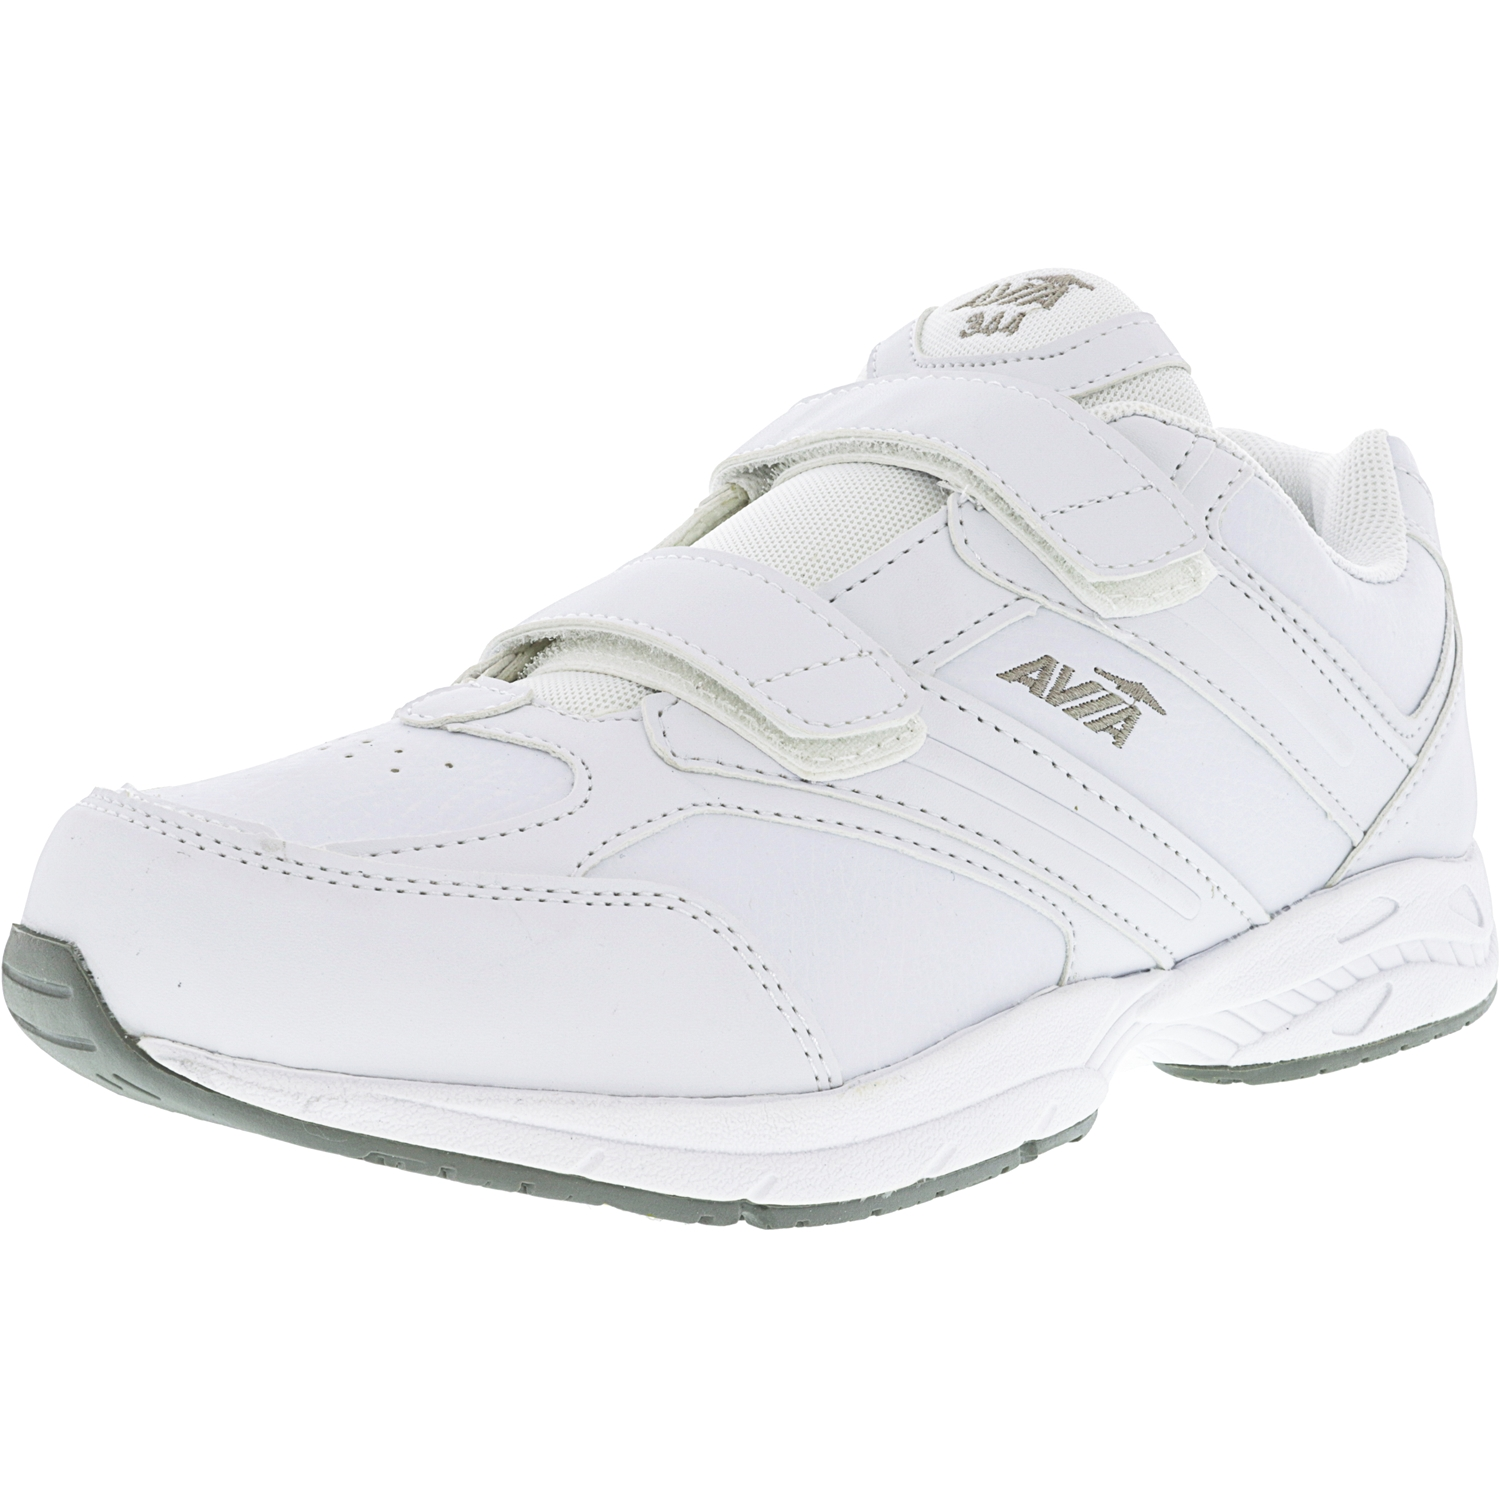 Avia Men's A344 White   Chrome Silver Lemon Yellow Ankle-High Walking Shoe 10.5WW by Avia